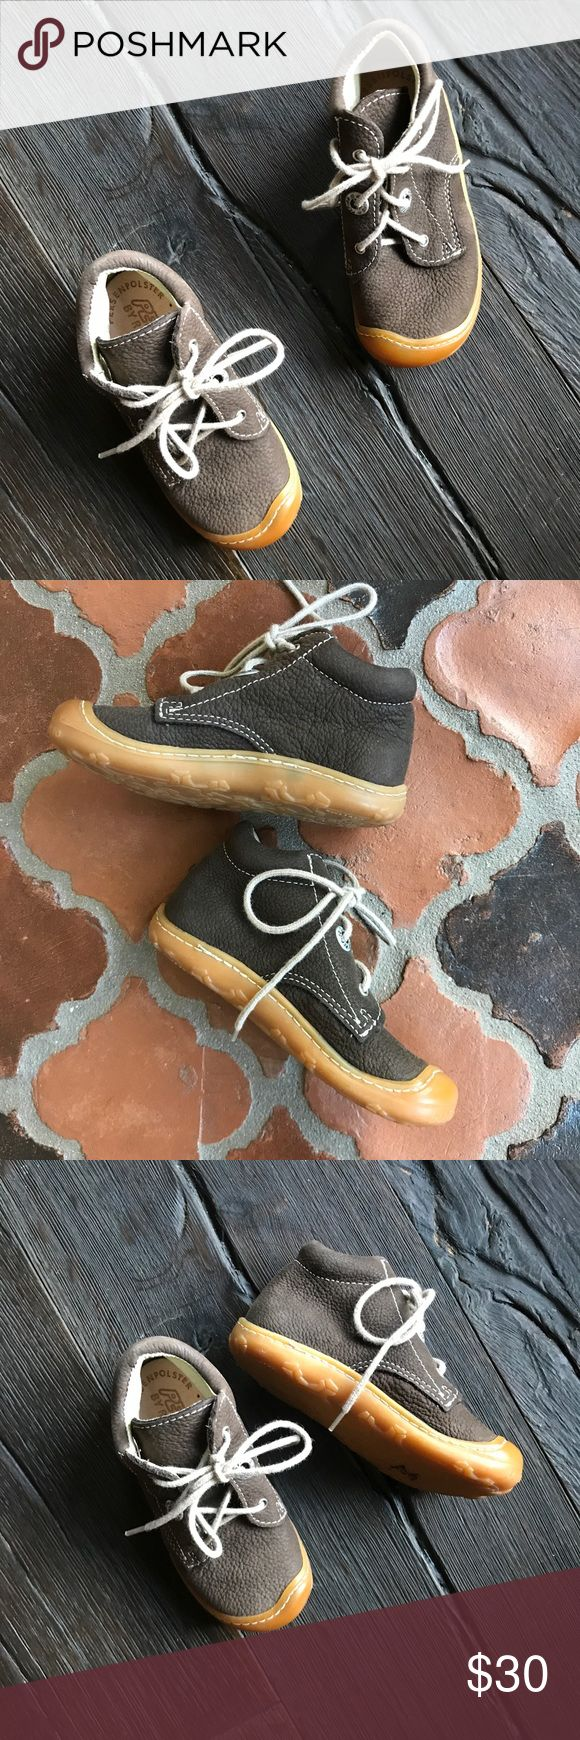 Ricosta Pepino kids boots shoes booties Only worn a few times. These German made shoes are amazing.  Superior quality.  ALL LEATHER INSIDE AND OUT WITH A GRIPPY RUBBER SOLE.  BUNDLE AND SAVE 🤗🤗🤗 shoe shoes size 22 euro which is 5.5 infant US PEPINO BY RICOSTA Shoes Boots